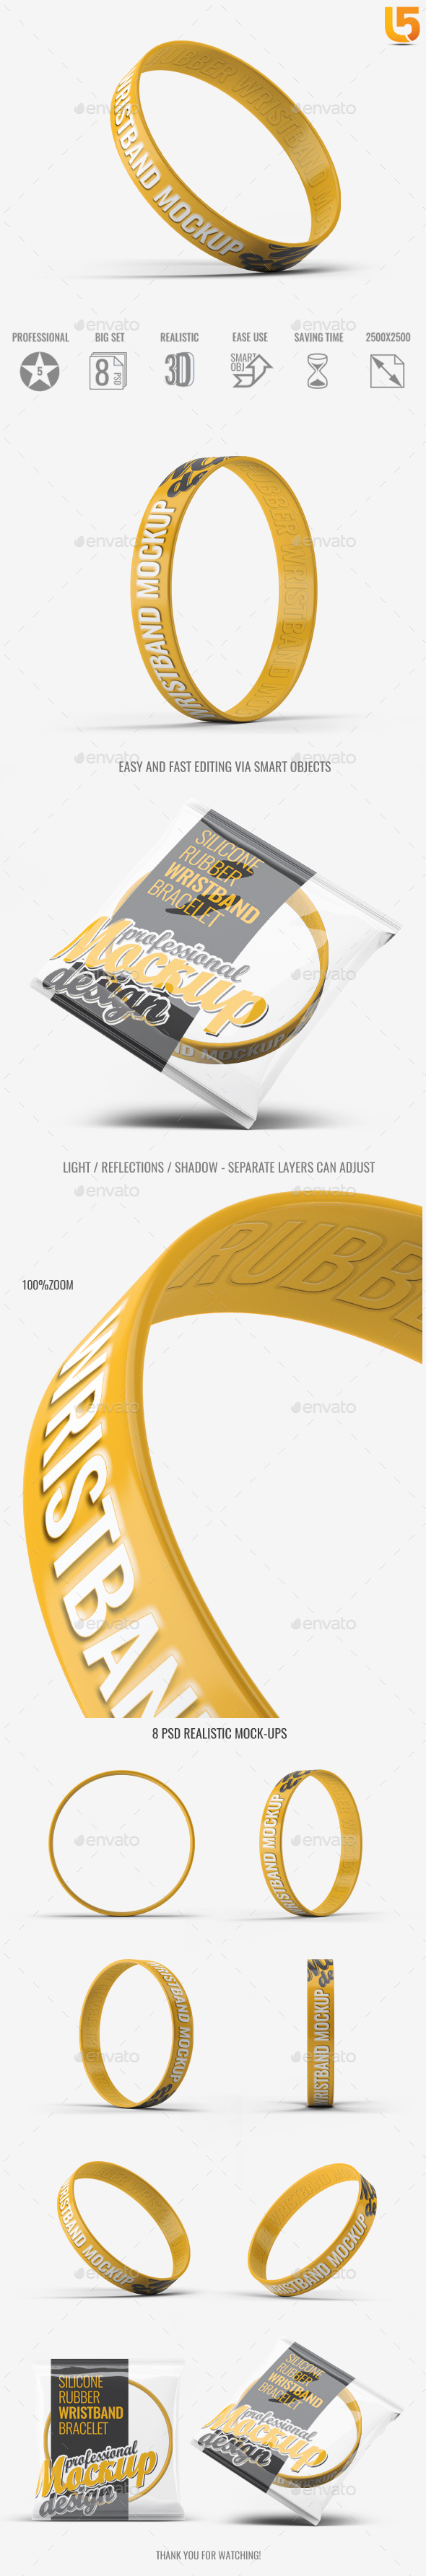 Silicone Rubber Wristband Bracelet Mock-Up - Miscellaneous Product Mock-Ups